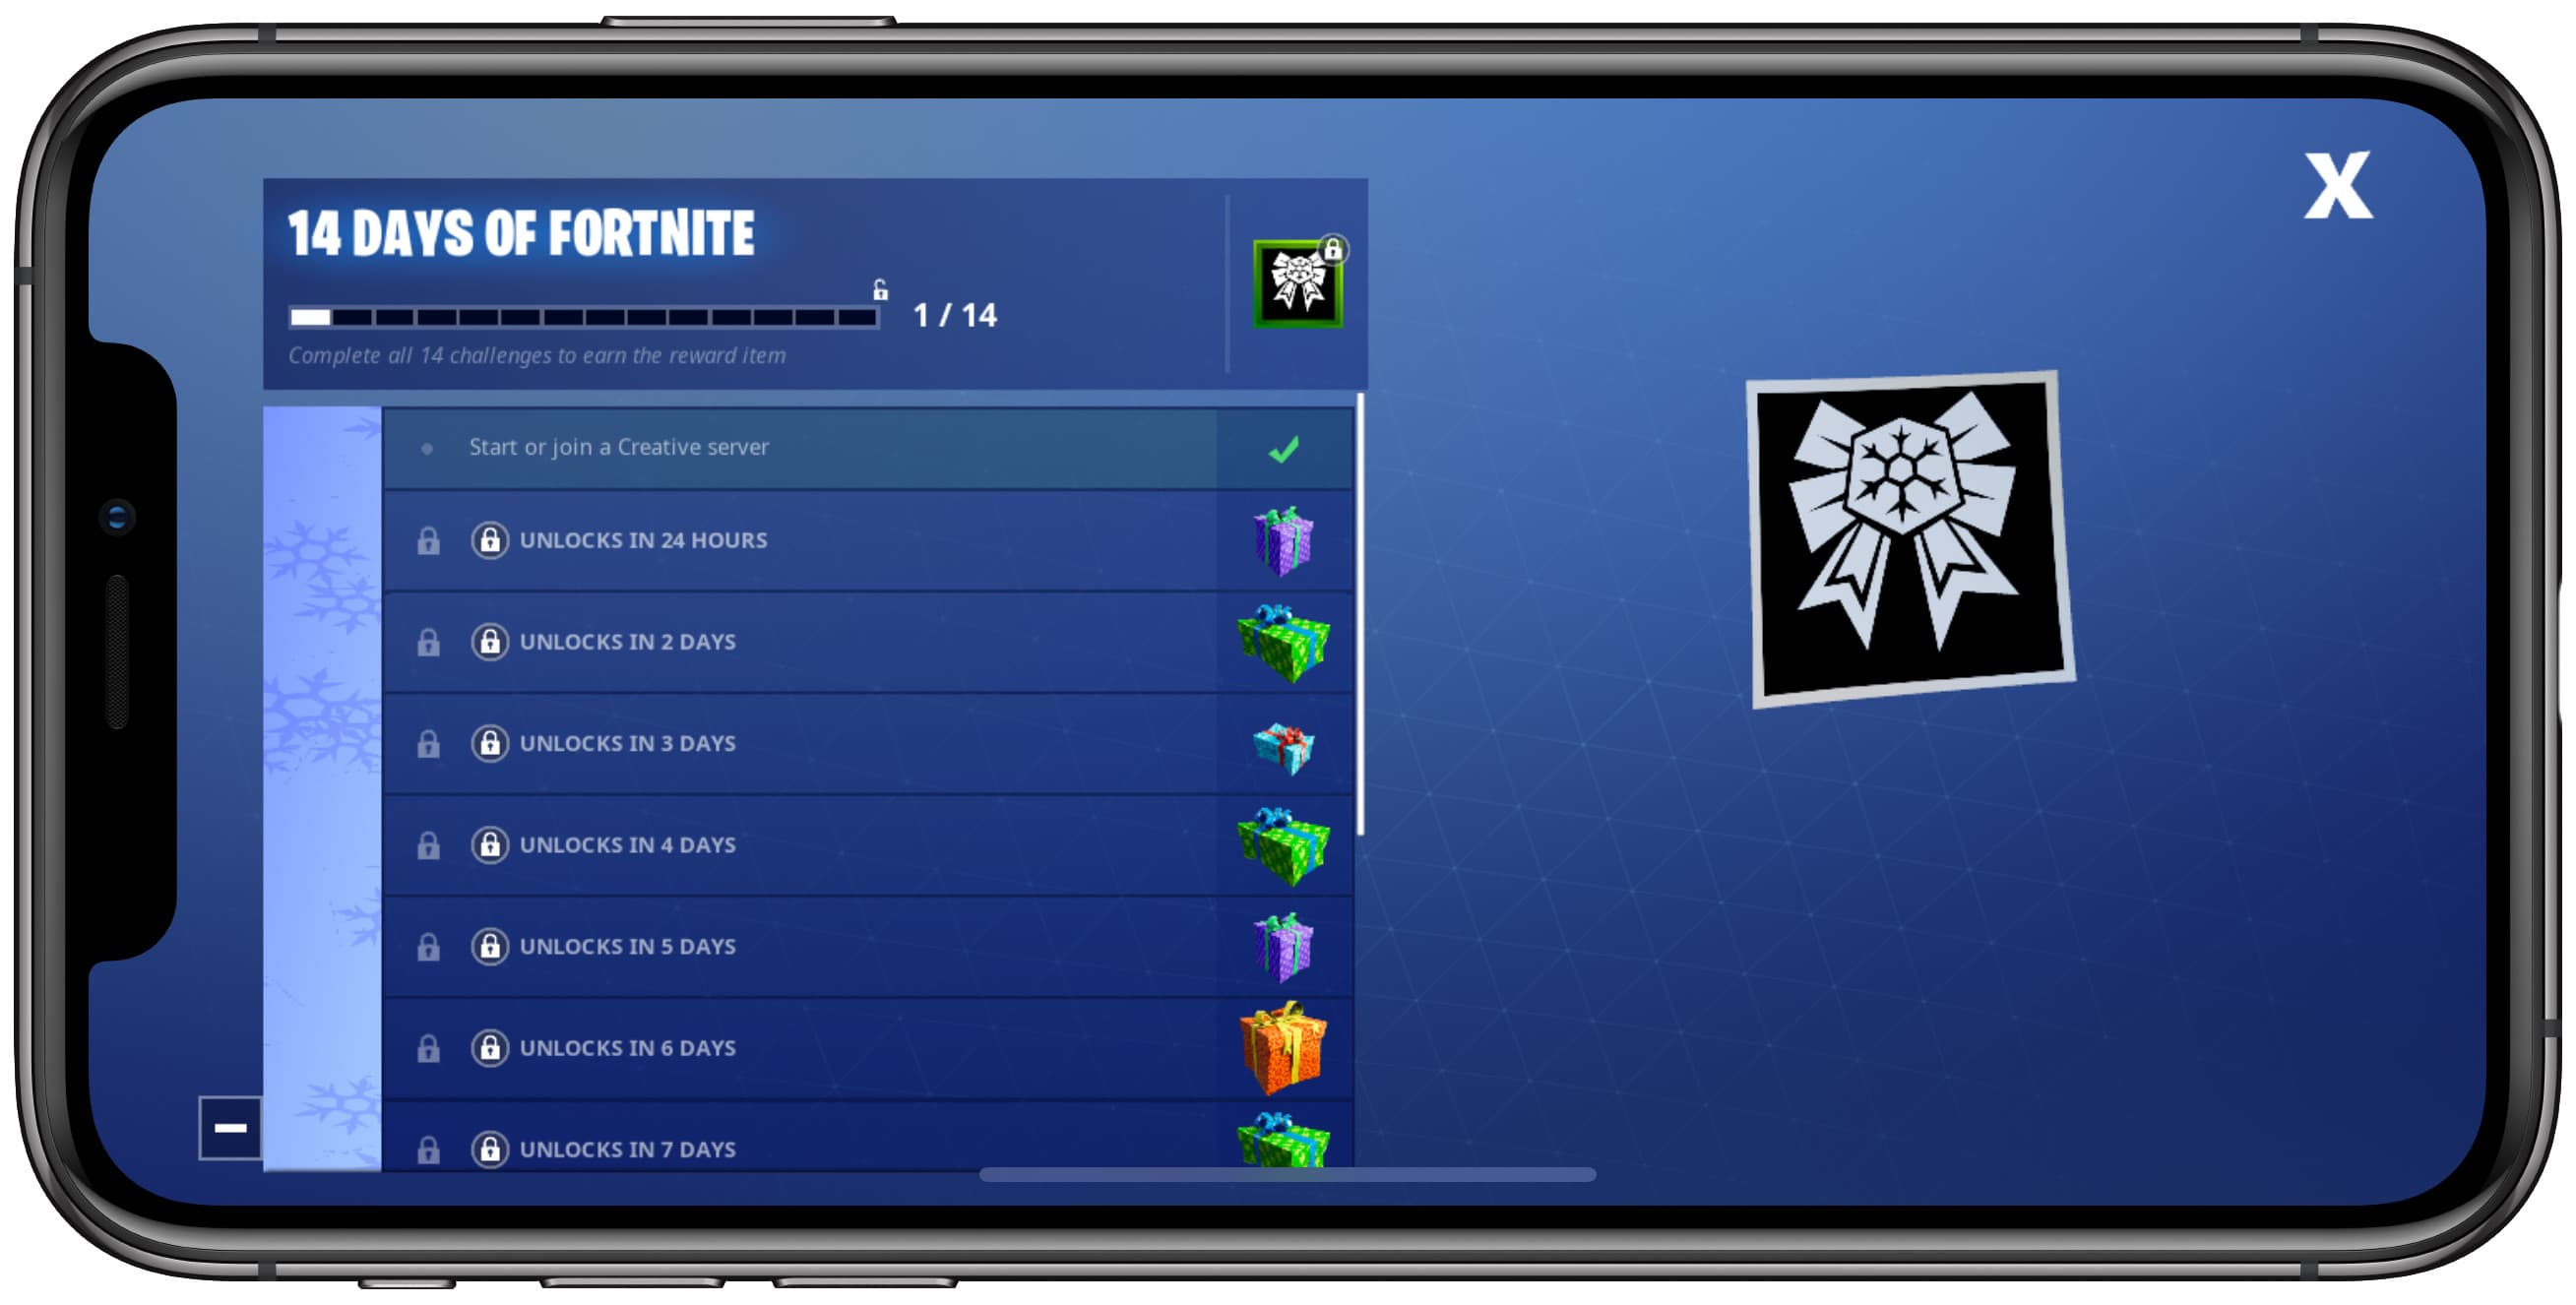 14 Days of Fortnite iPhone